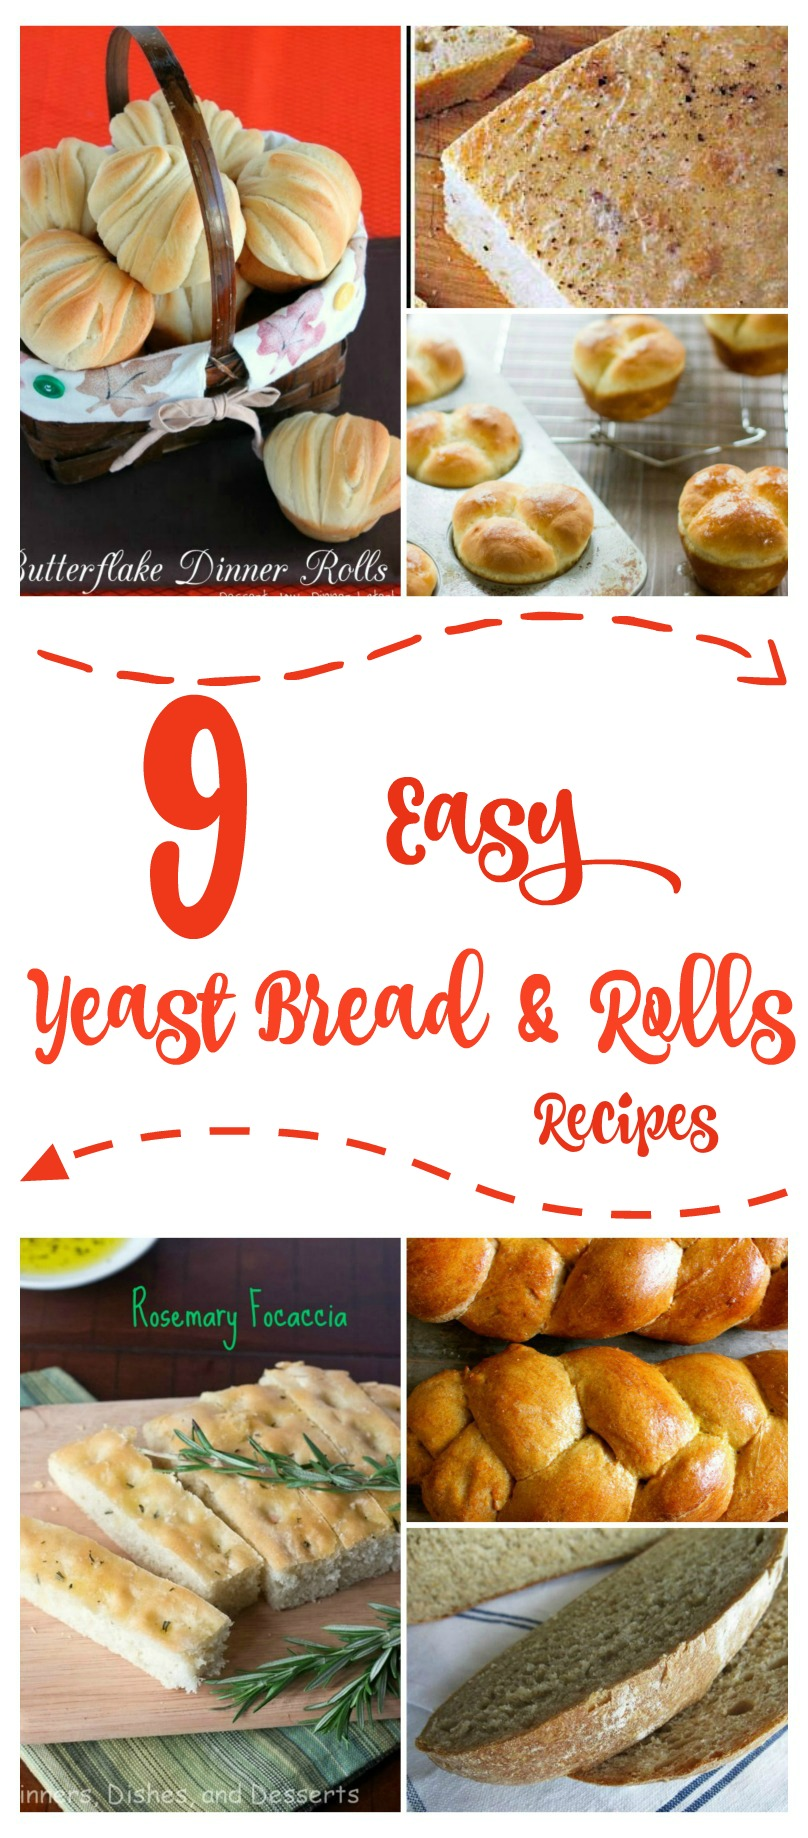 Are you considering learning how to make your own bread? Here are 9 easy yeast bread & rolls recipes that are perfect for beginners!